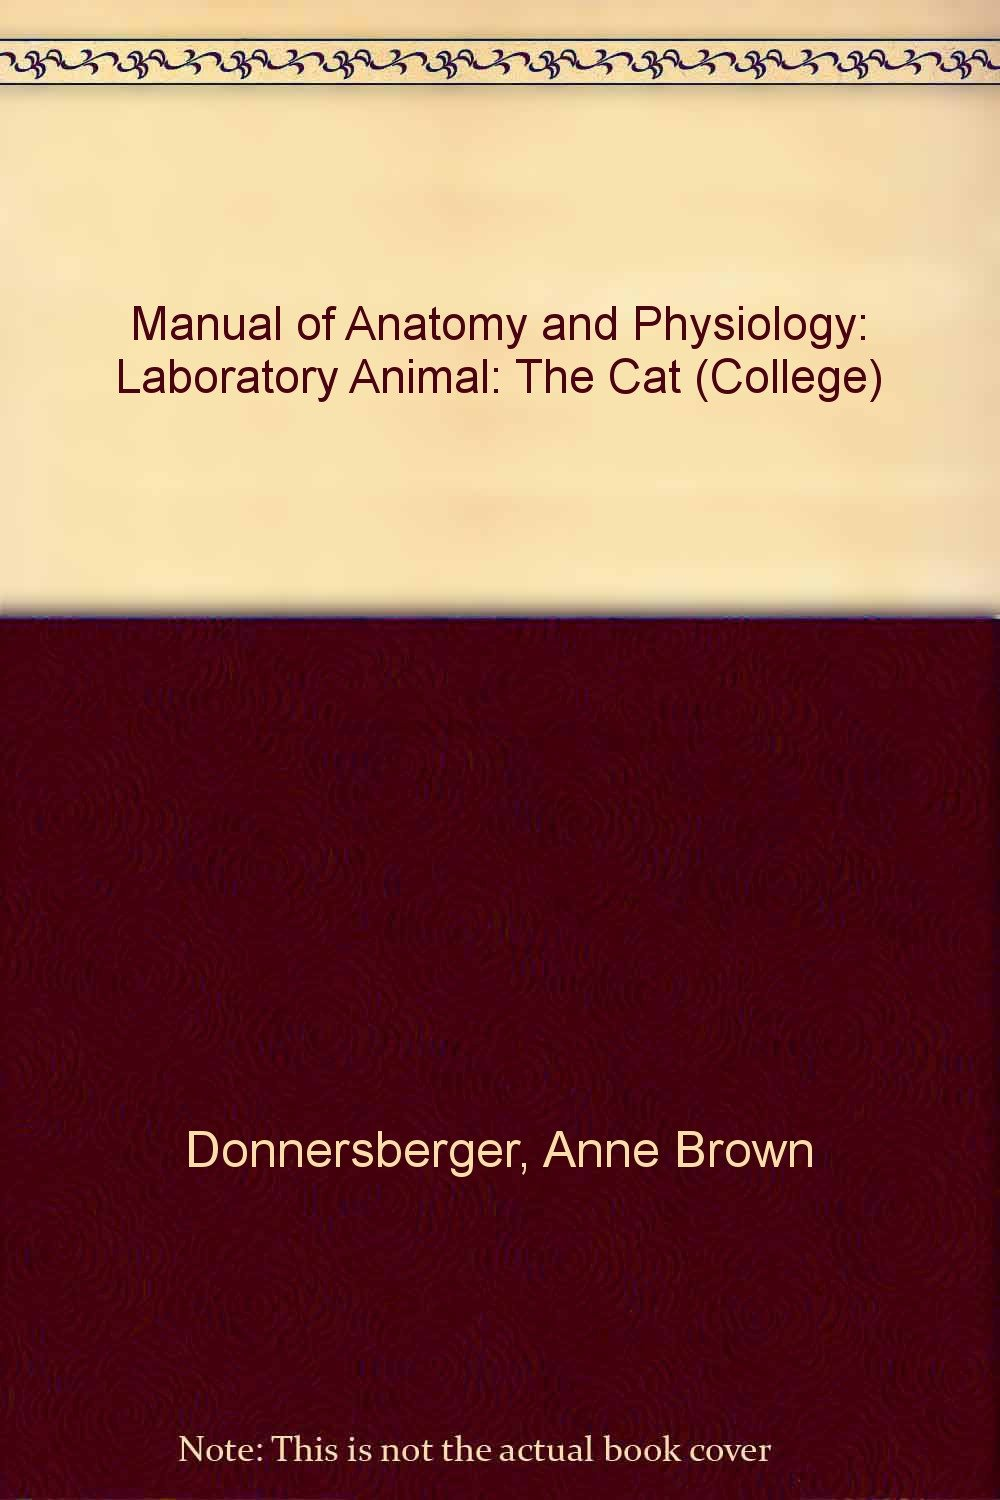 Manual of Anatomy and Physiology: Laboratory Animal: The Cat (College):  Anne Brown Donnersberger, etc.: 9780669024814: Amazon.com: Books